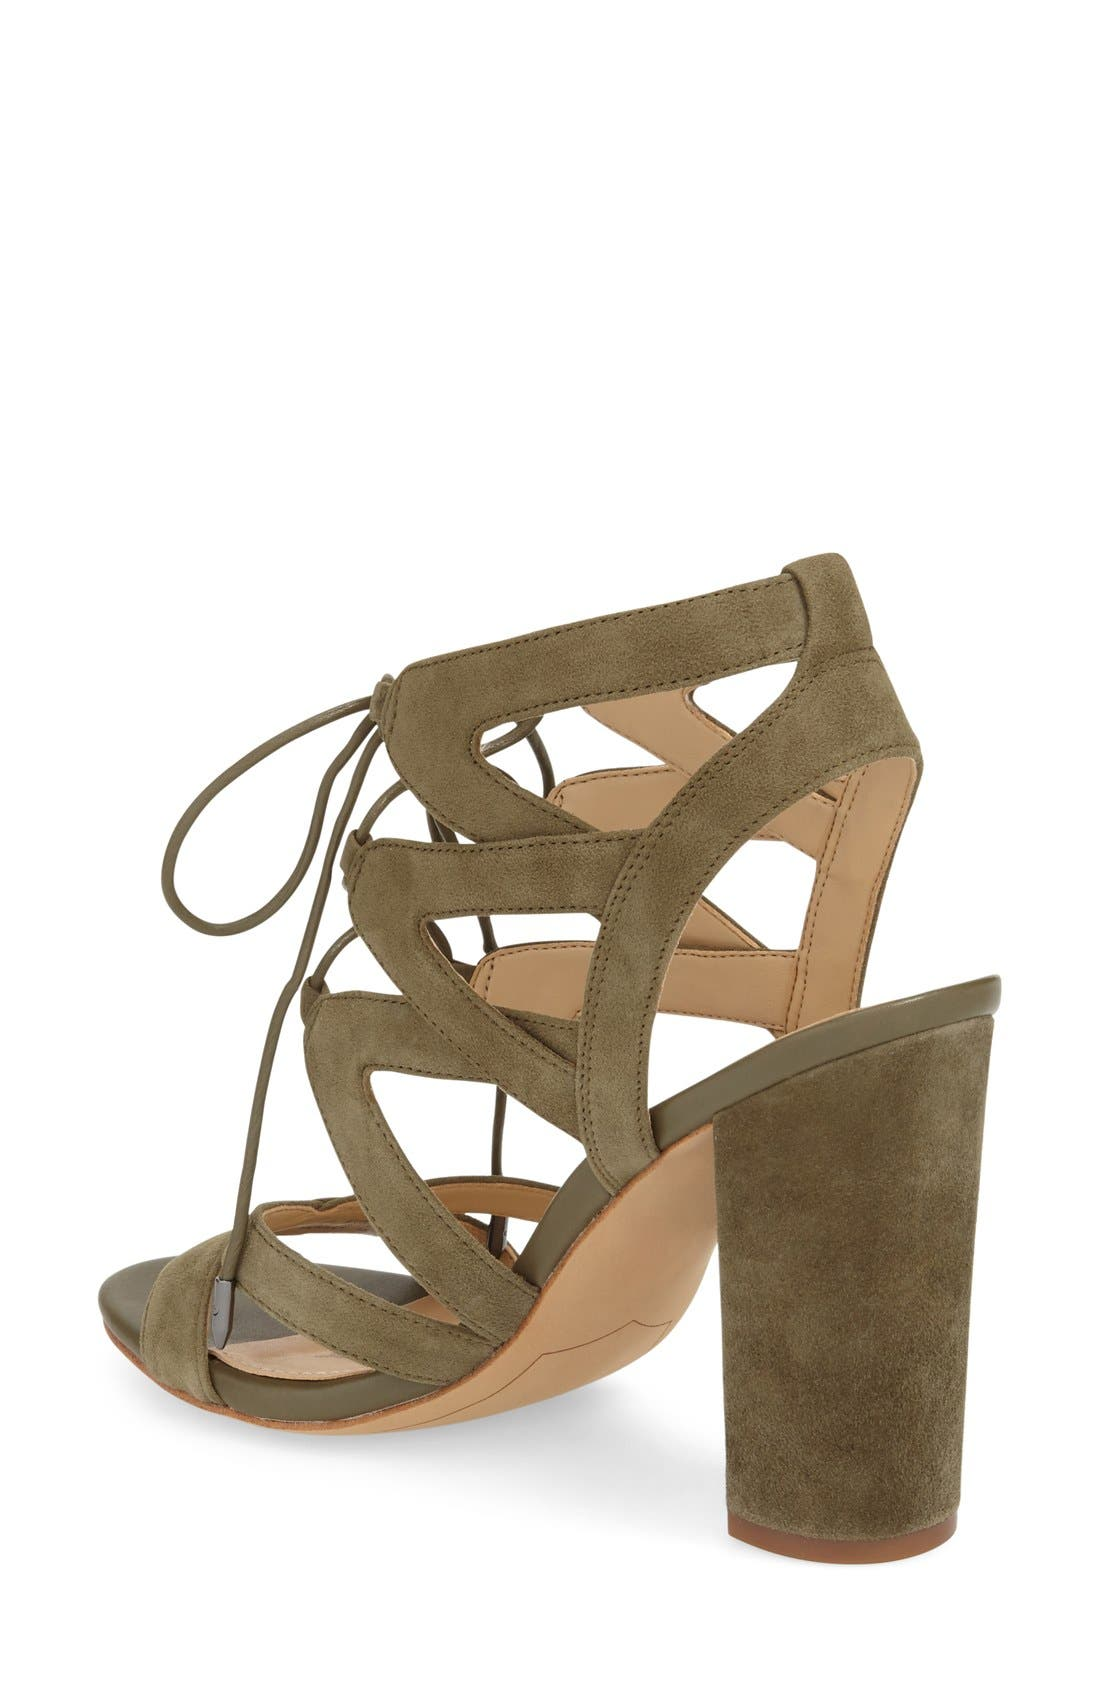 'Yardley' Lace-Up Sandal,                             Alternate thumbnail 3, color,                             Moss Green Suede Leather